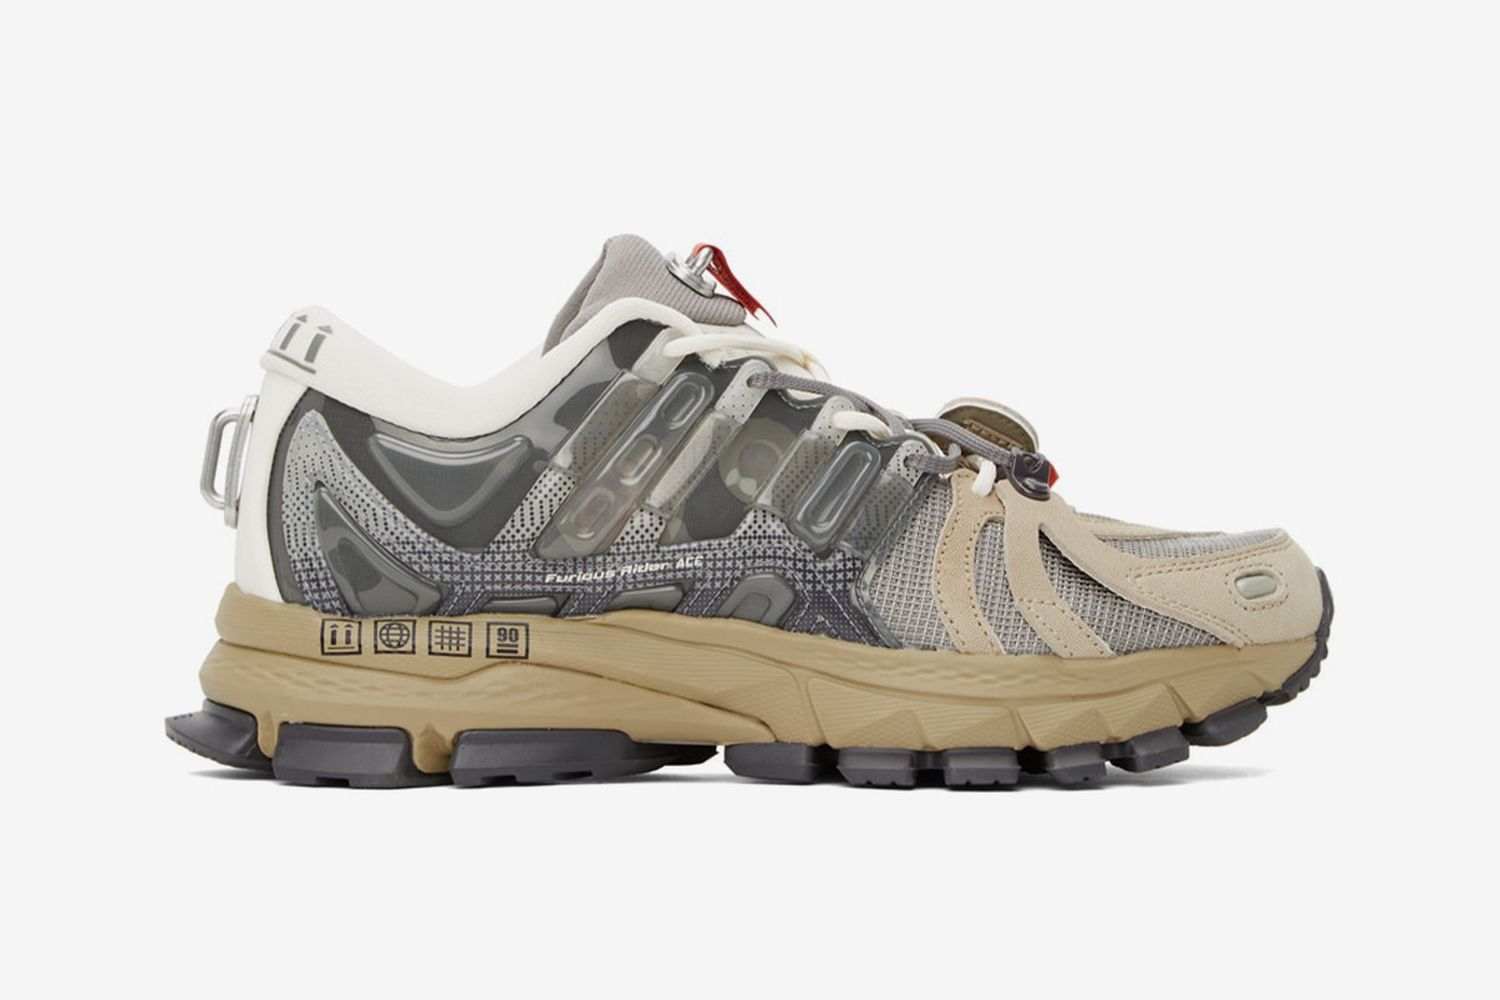 Furious Rider Ace 1.5 Sneakers